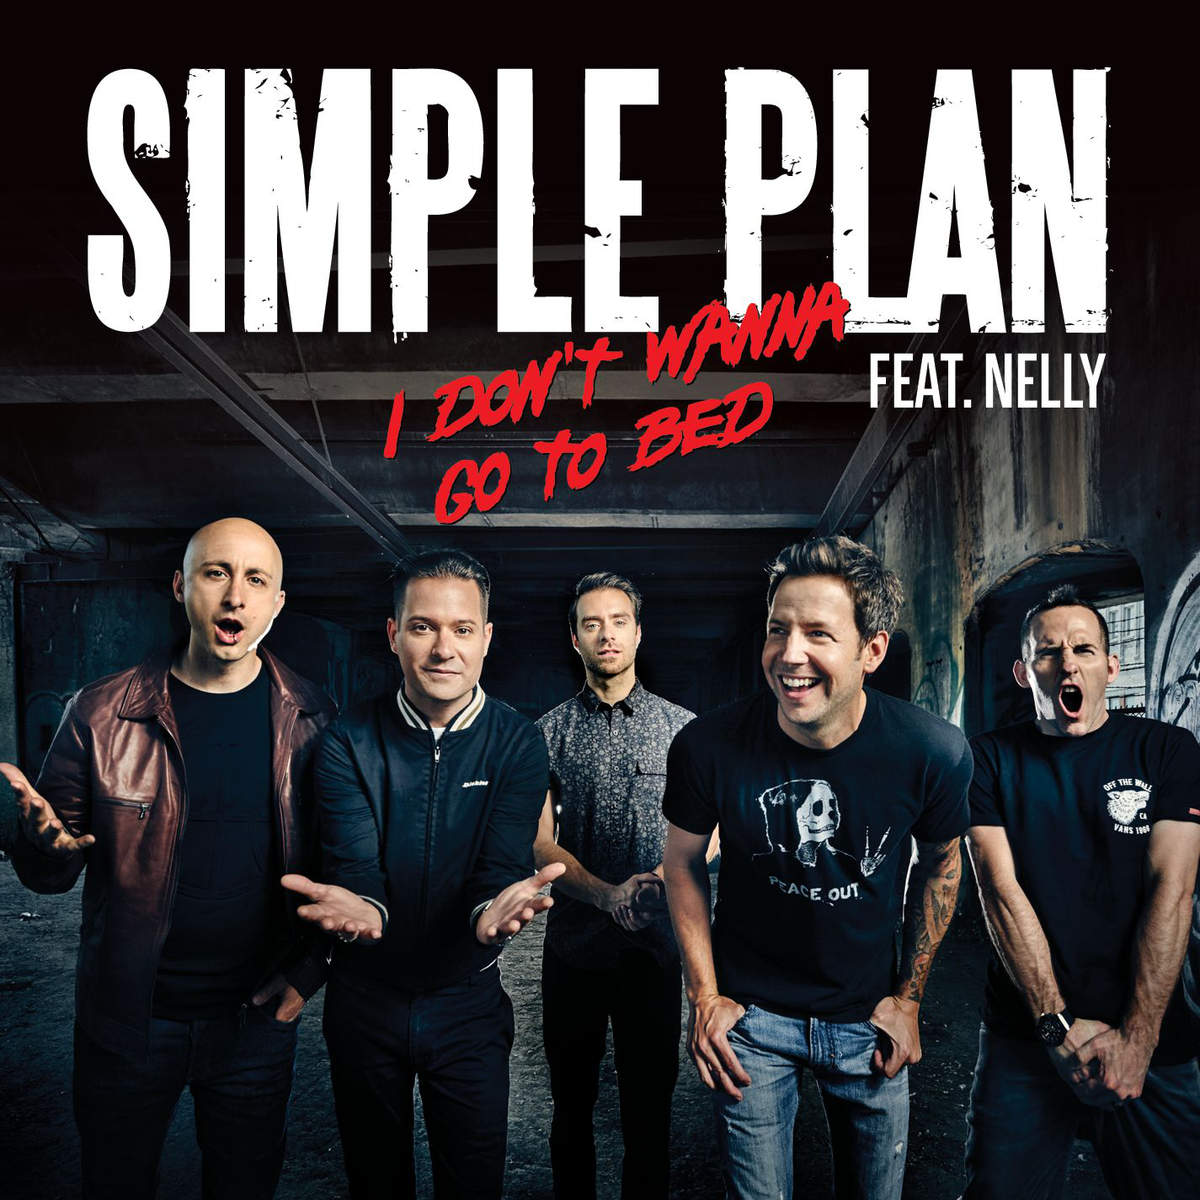 Simple-Plan-I-Dont-Wanna-Go-to-Bed-2015-1200x1200.png